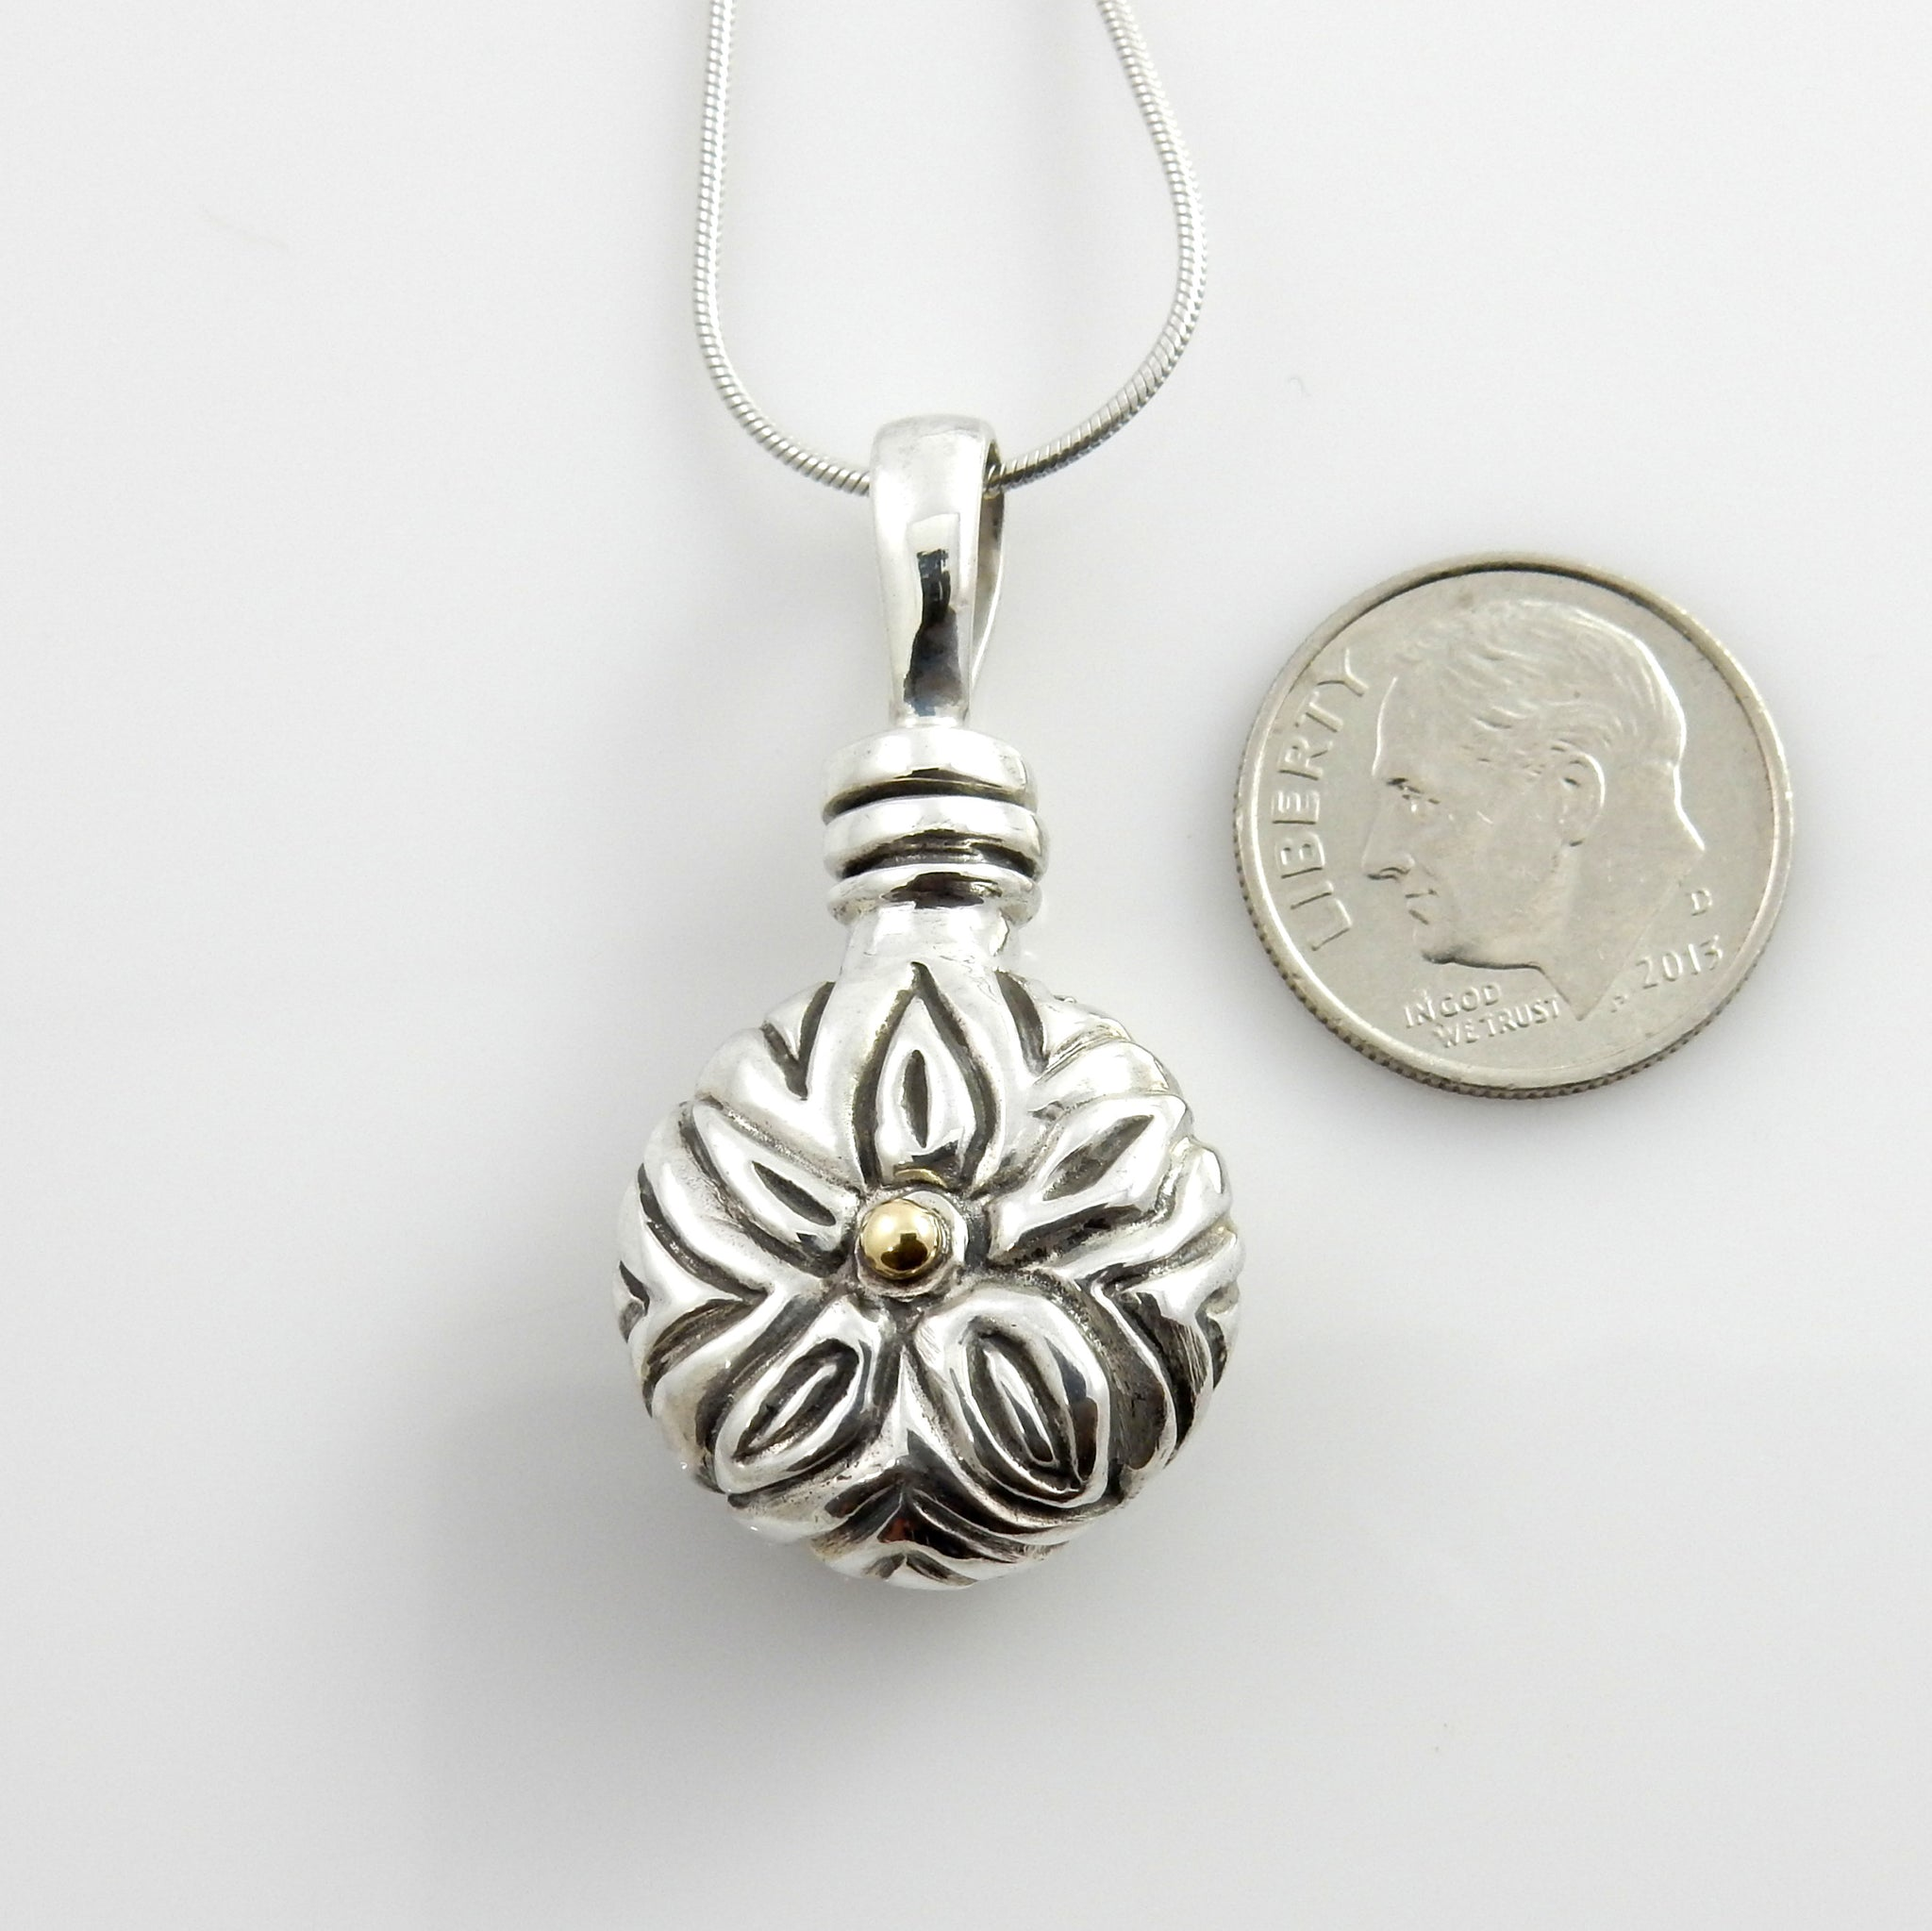 Silver Handcrafted Urn Pendant